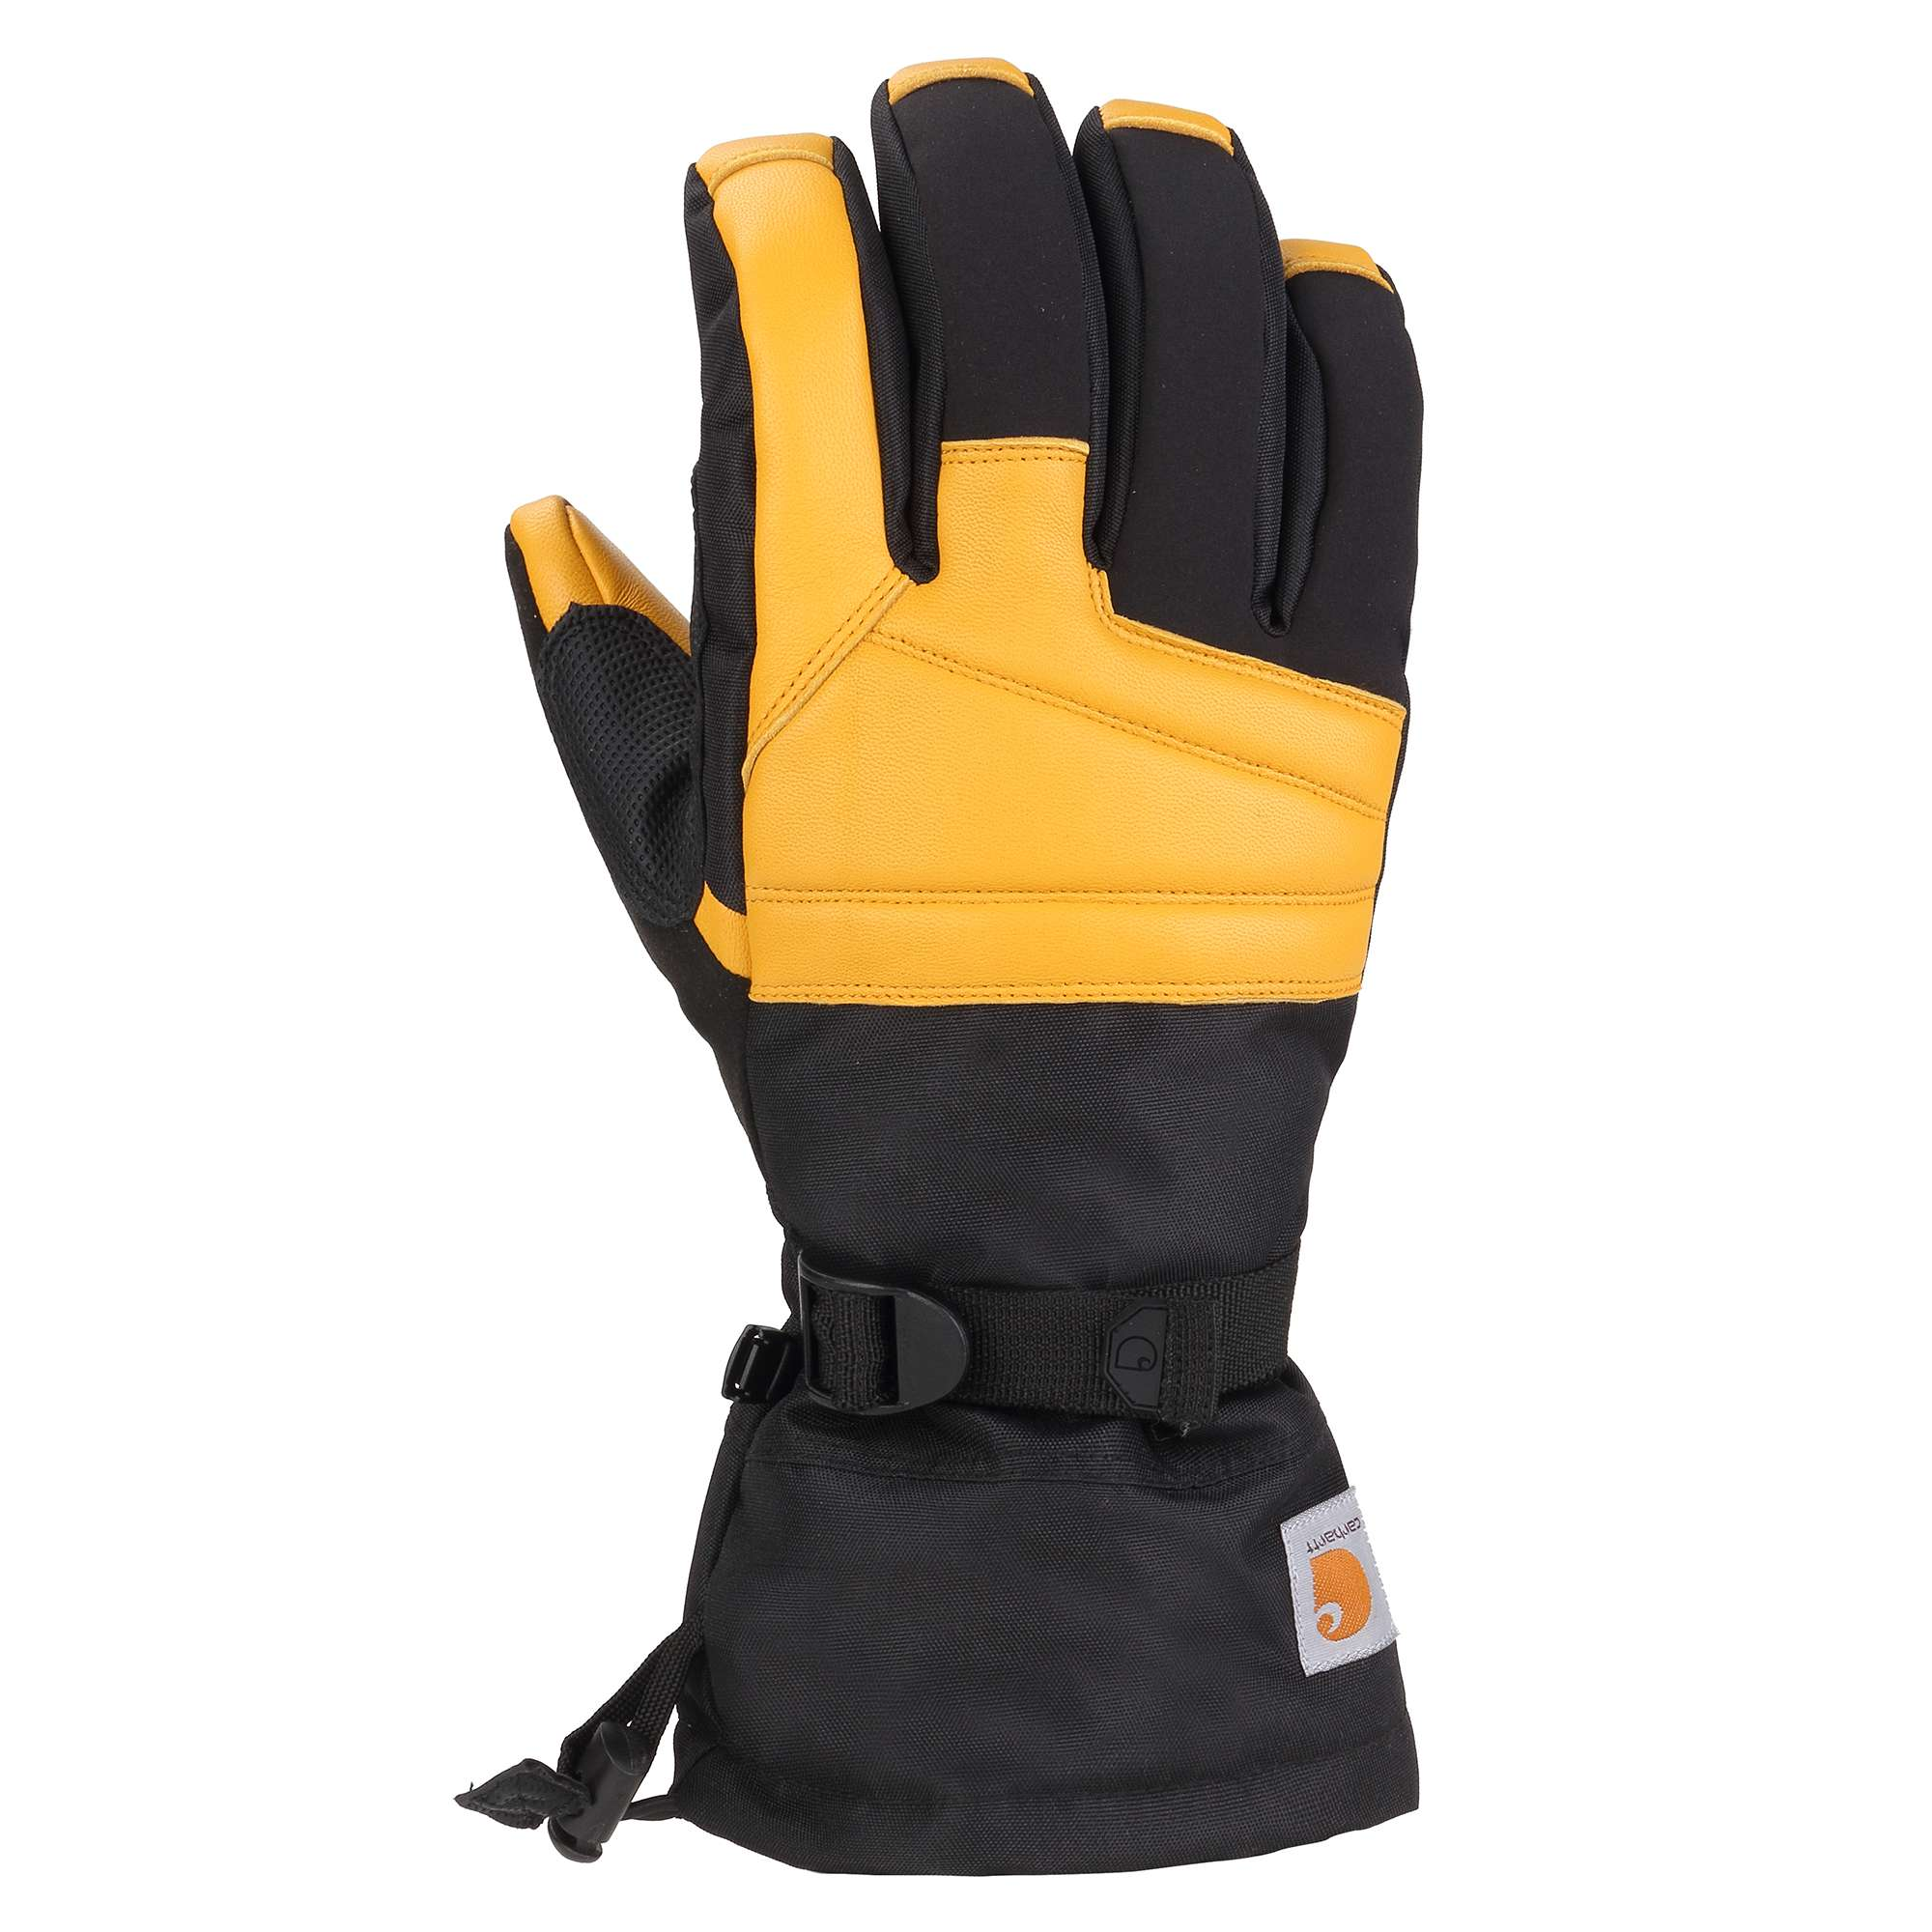 Carhartt Cold Snap Insulated Glove